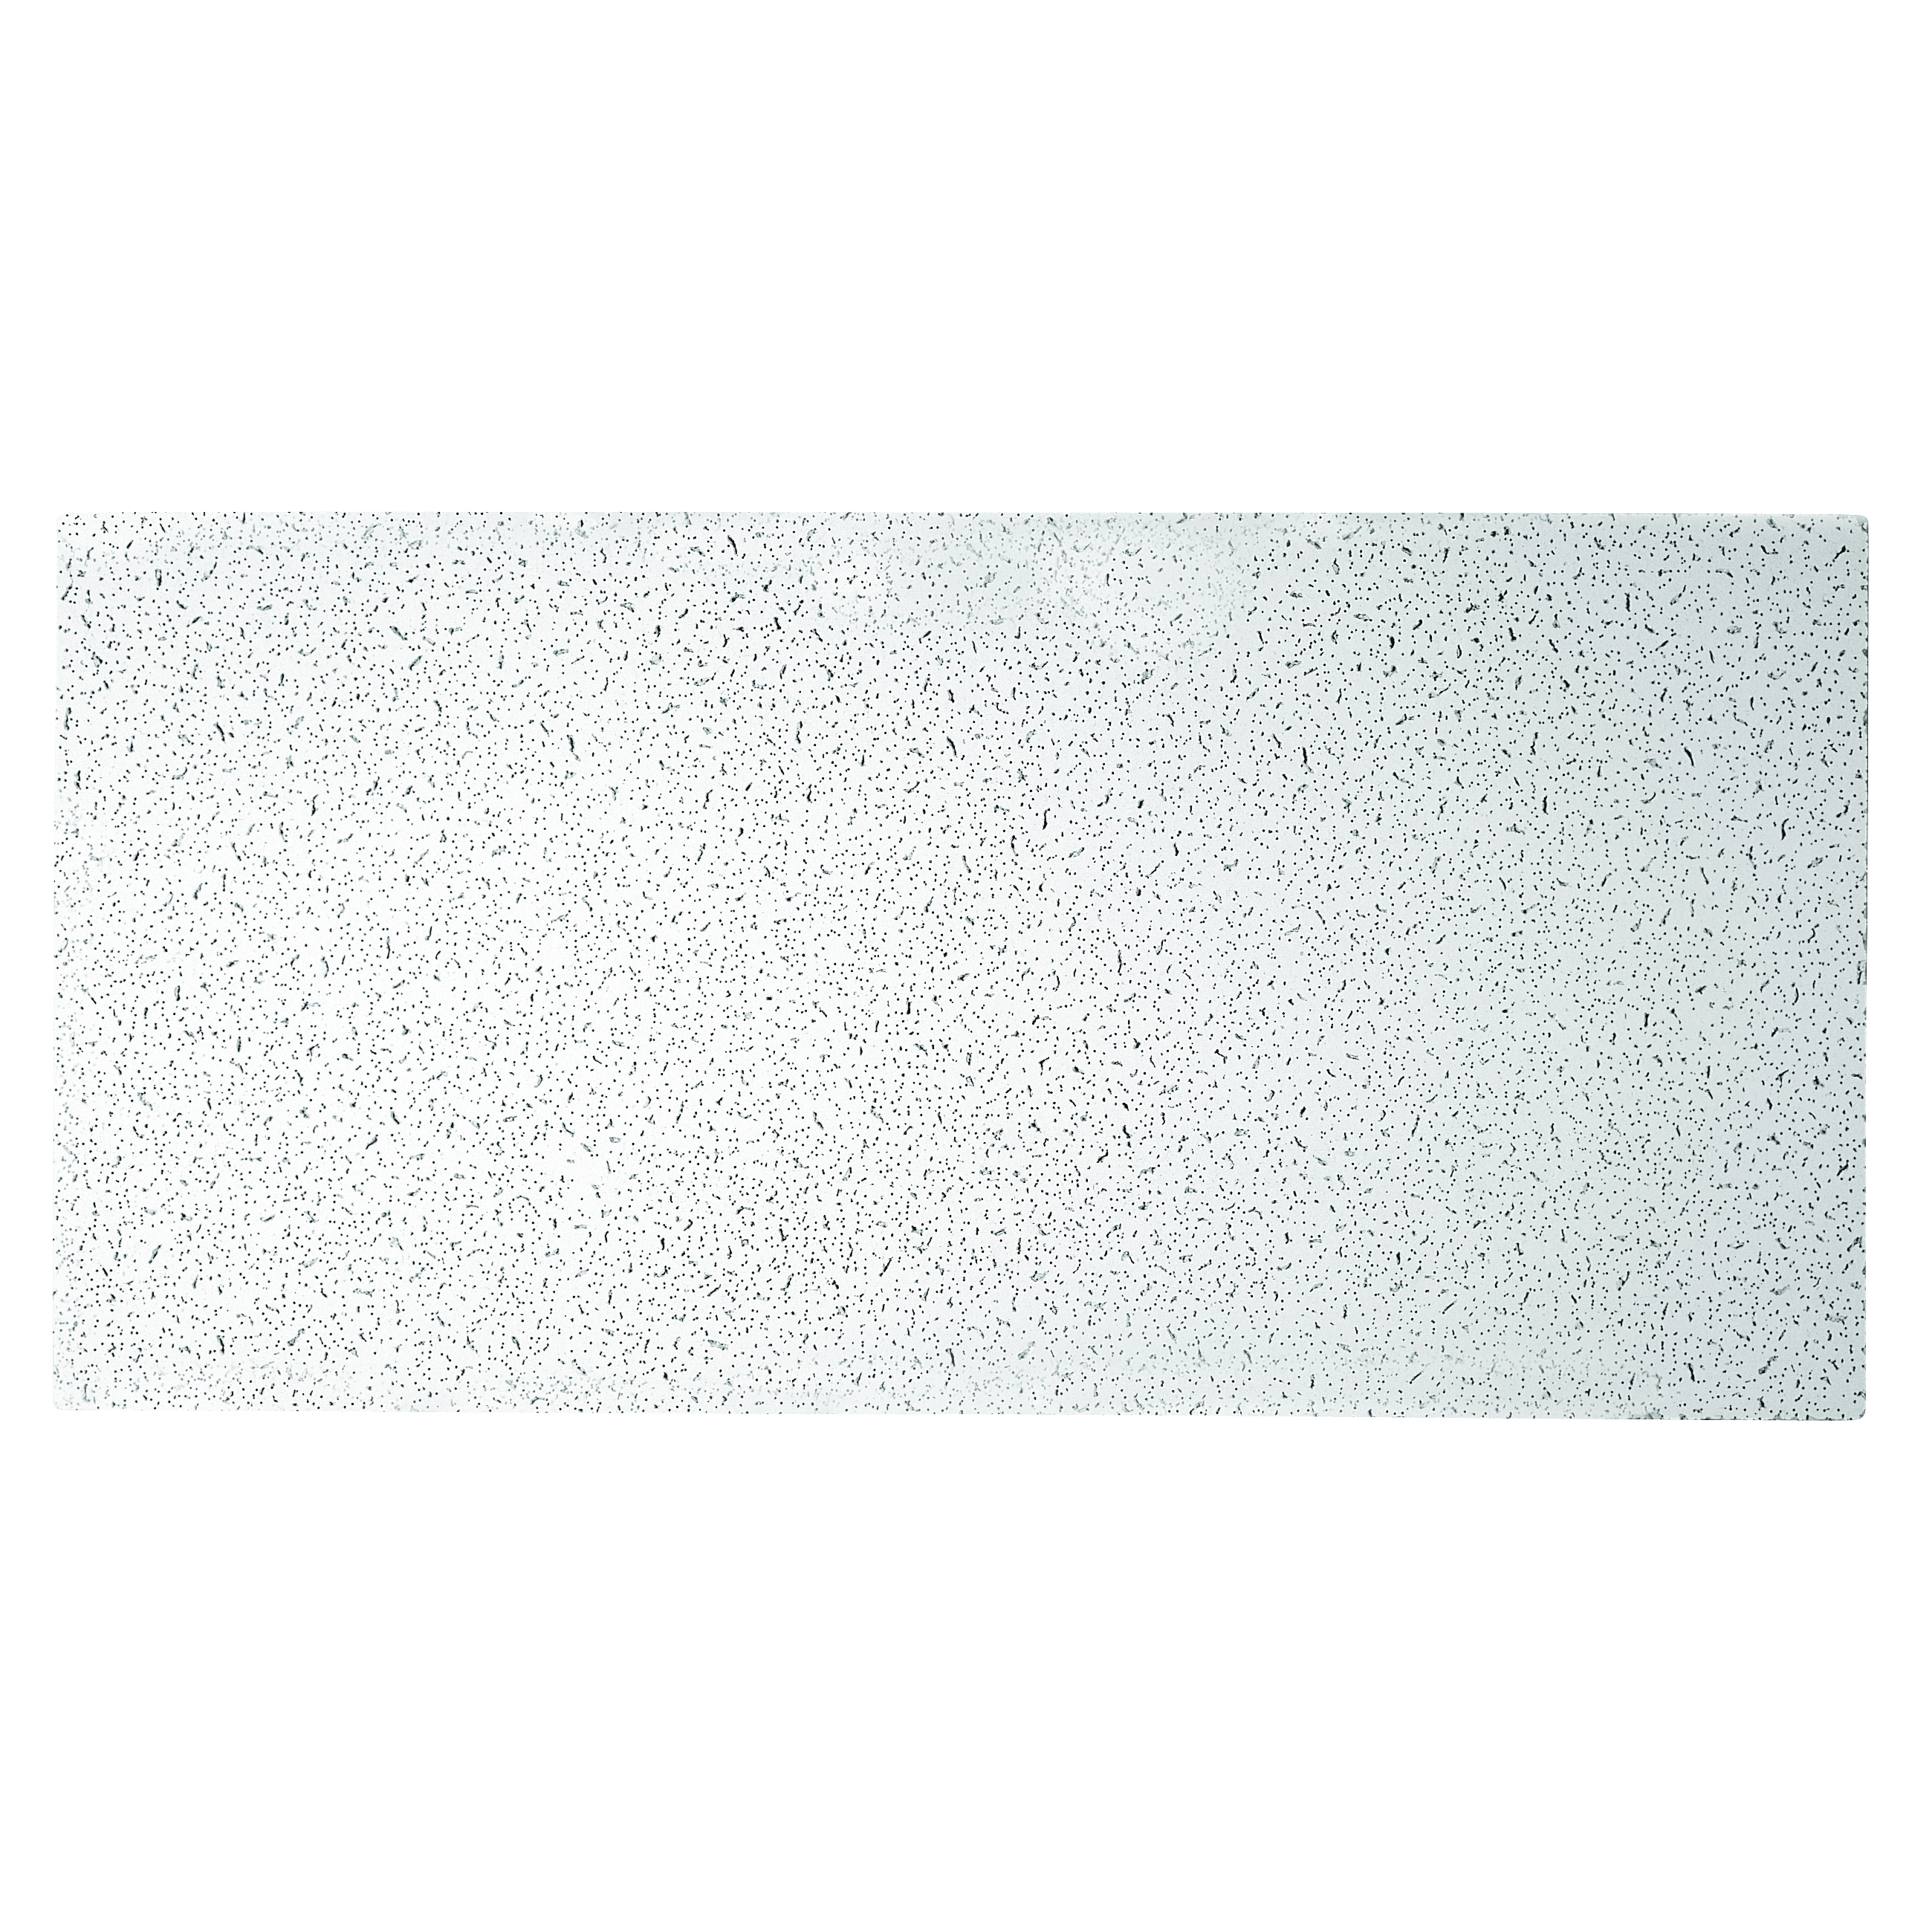 Picture of USG PLATEAU 725 Ceiling Panel, 4 ft L, 2 ft W, 9/16 in Thick, Mineral Fiber, White